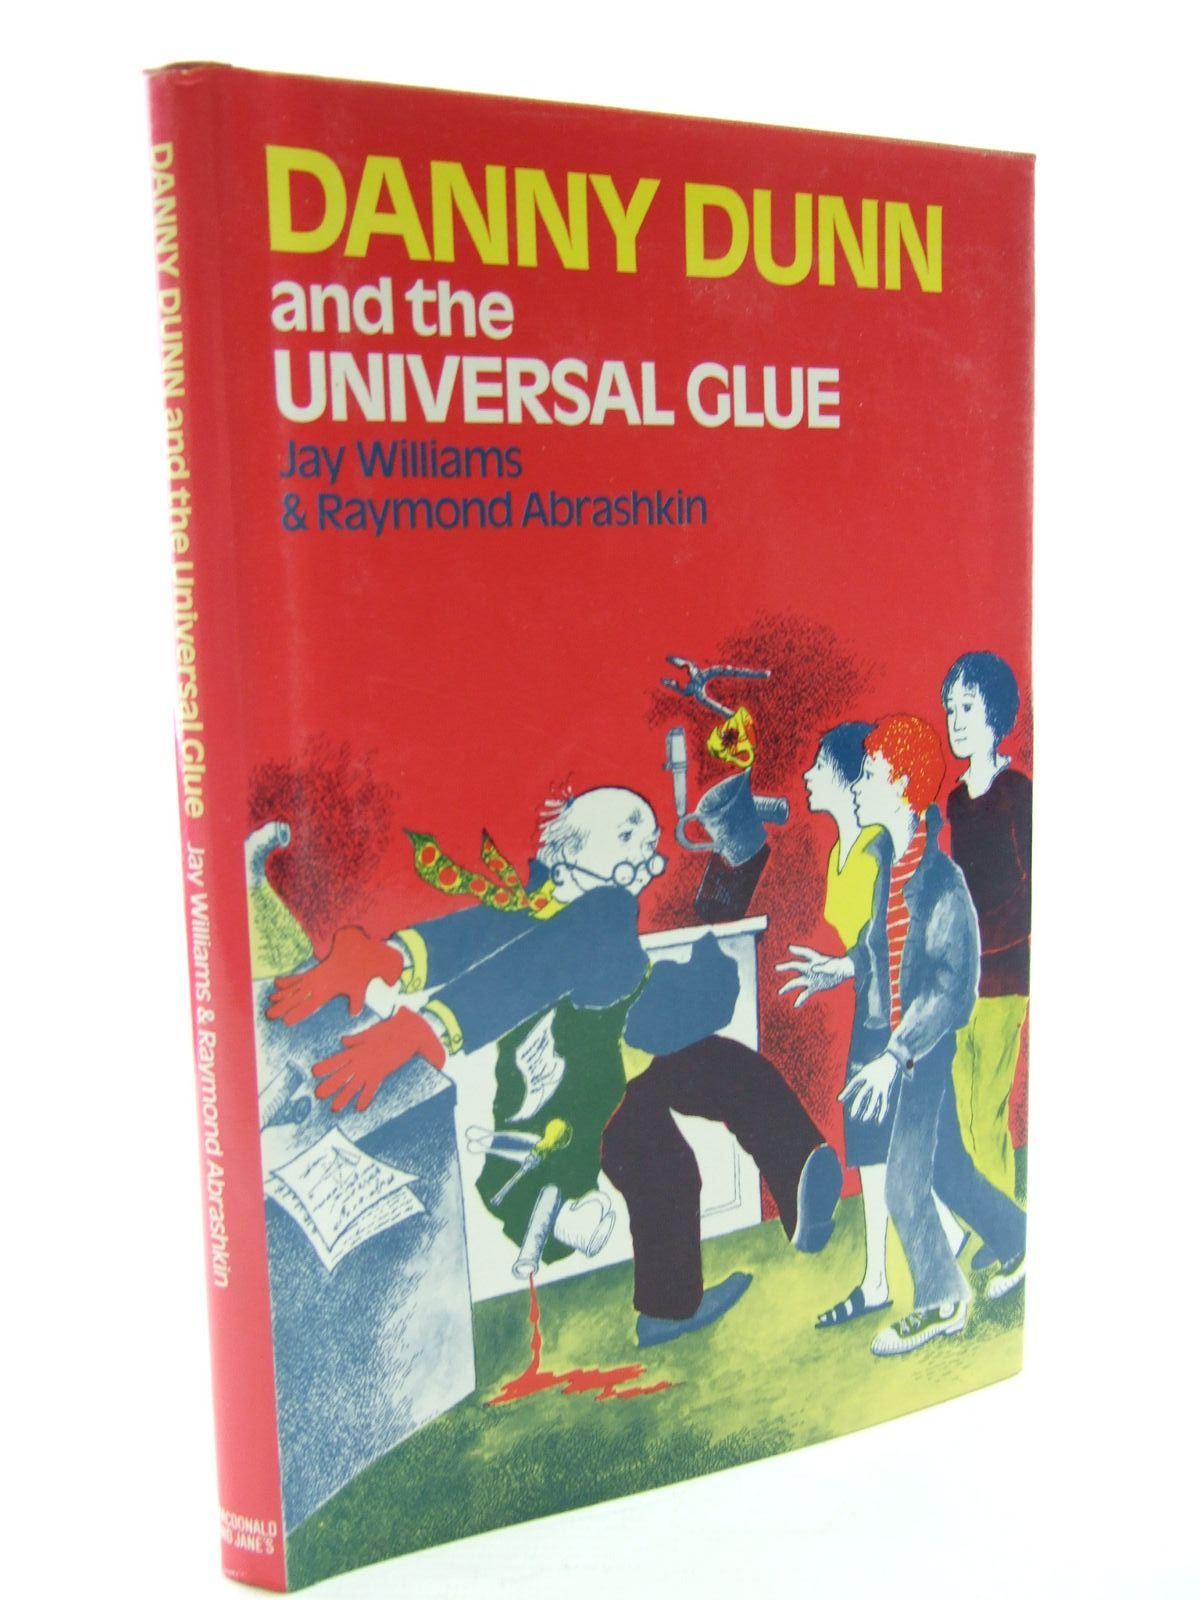 Photo of DANNY DUNN AND THE UNIVERSAL GLUE- Stock Number: 2107188